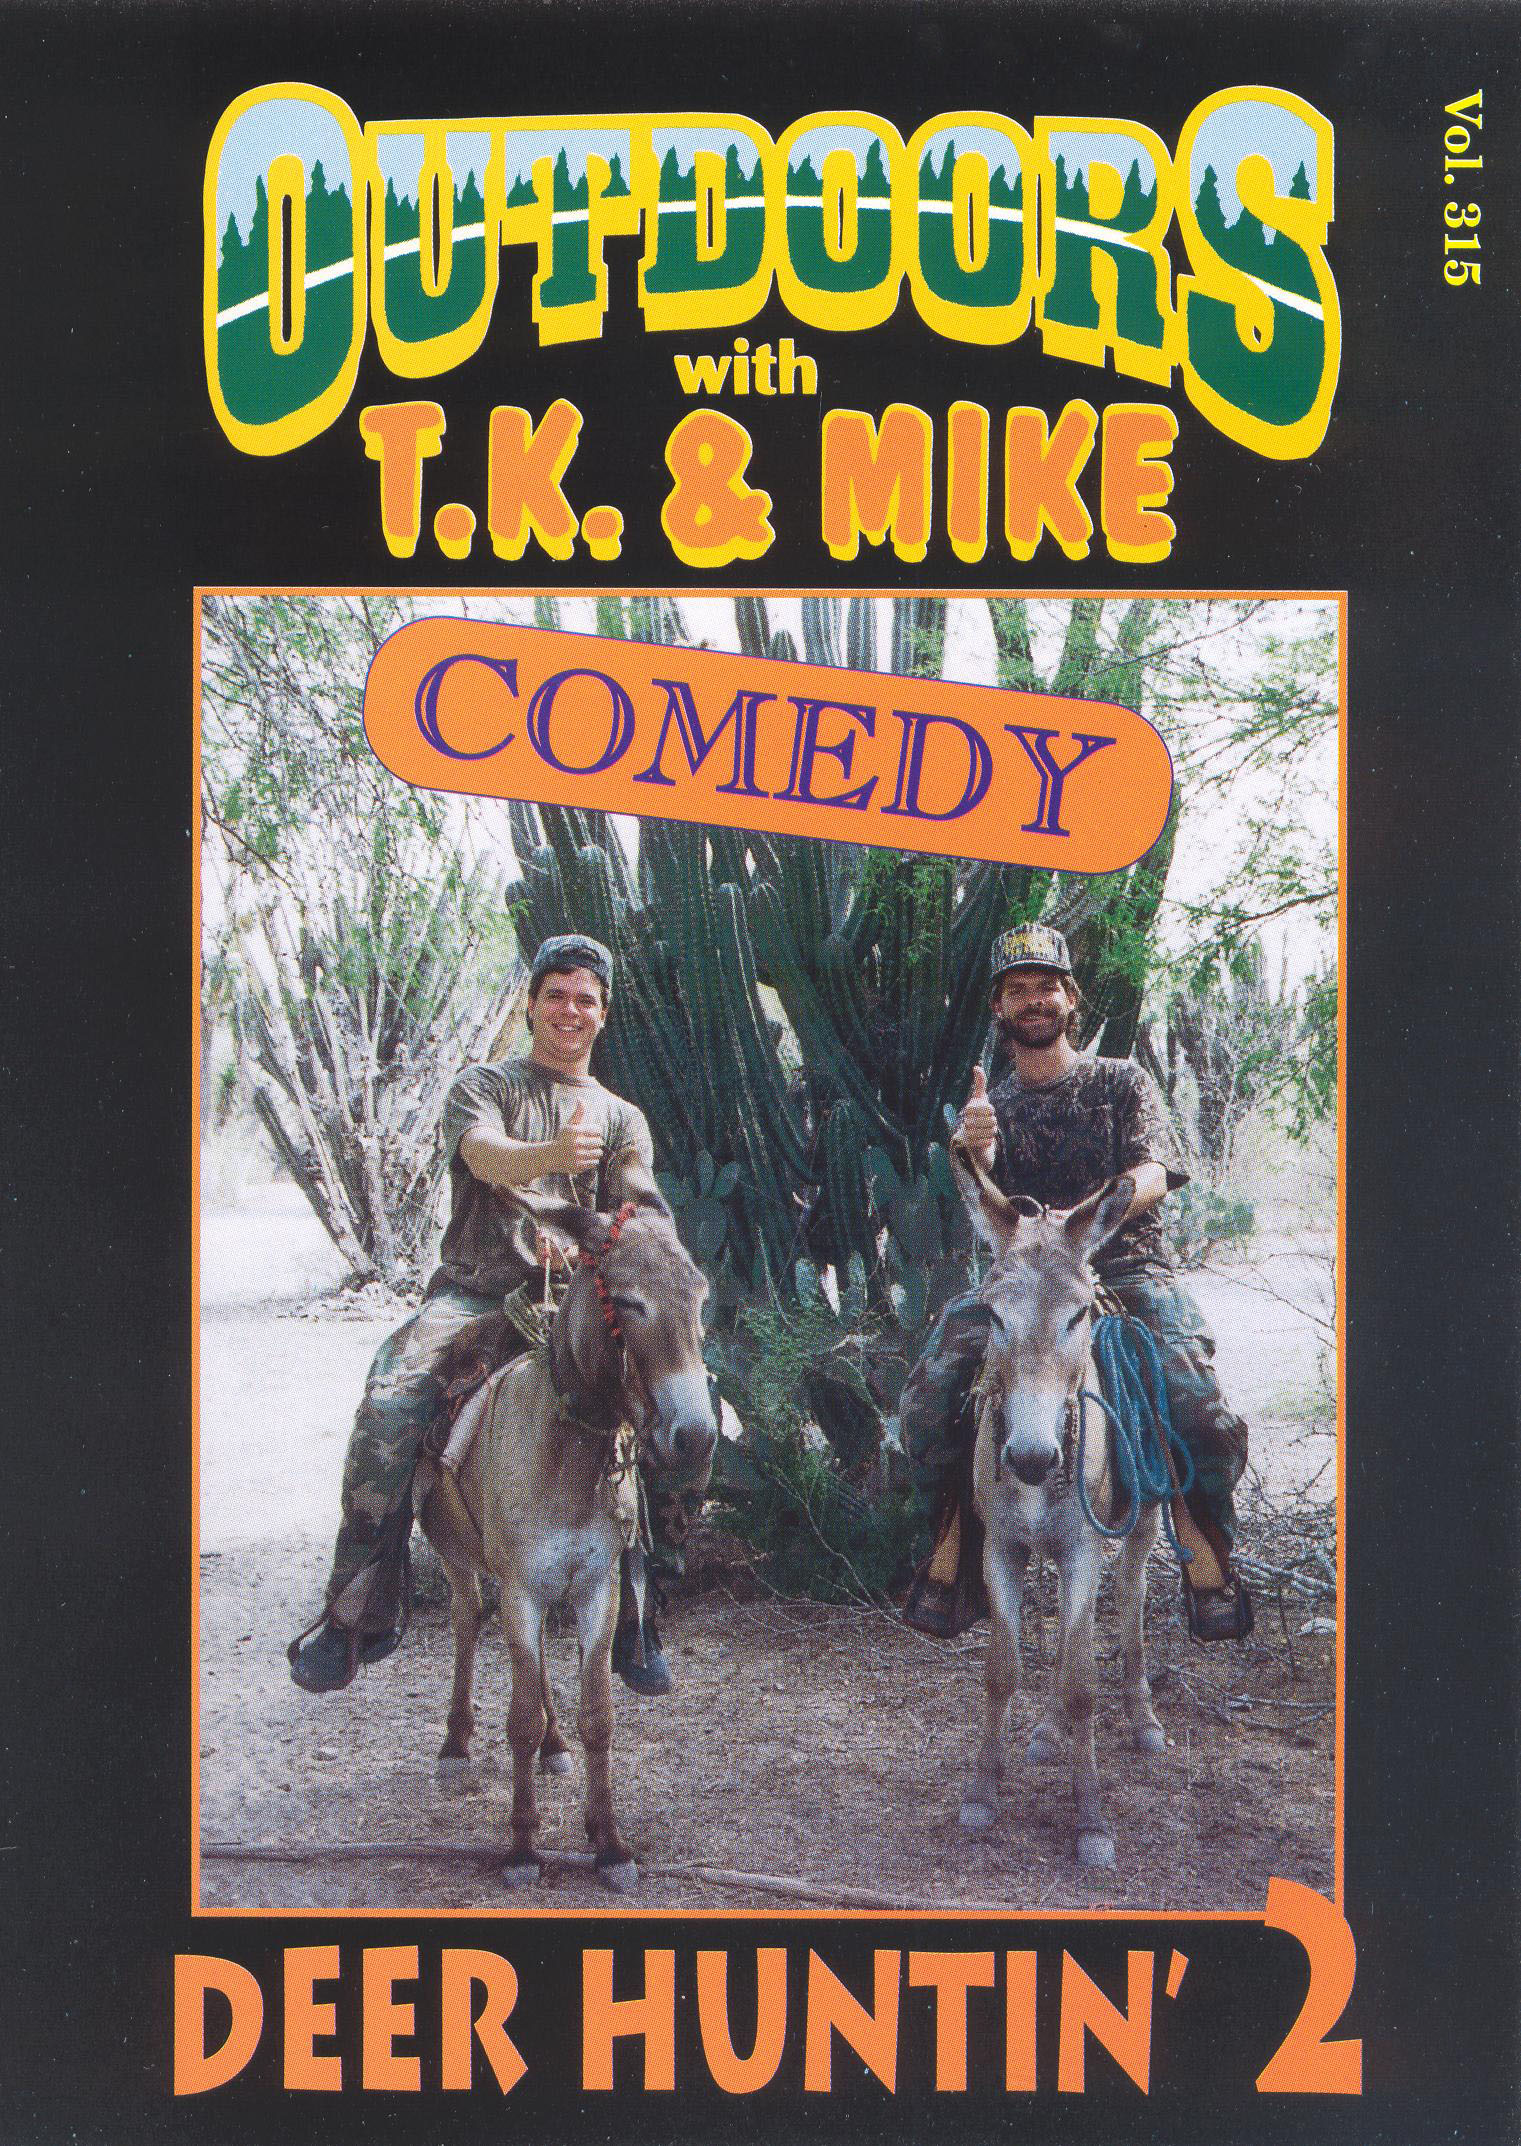 T.J. and Mike: Deer Hunting, Vol. 2